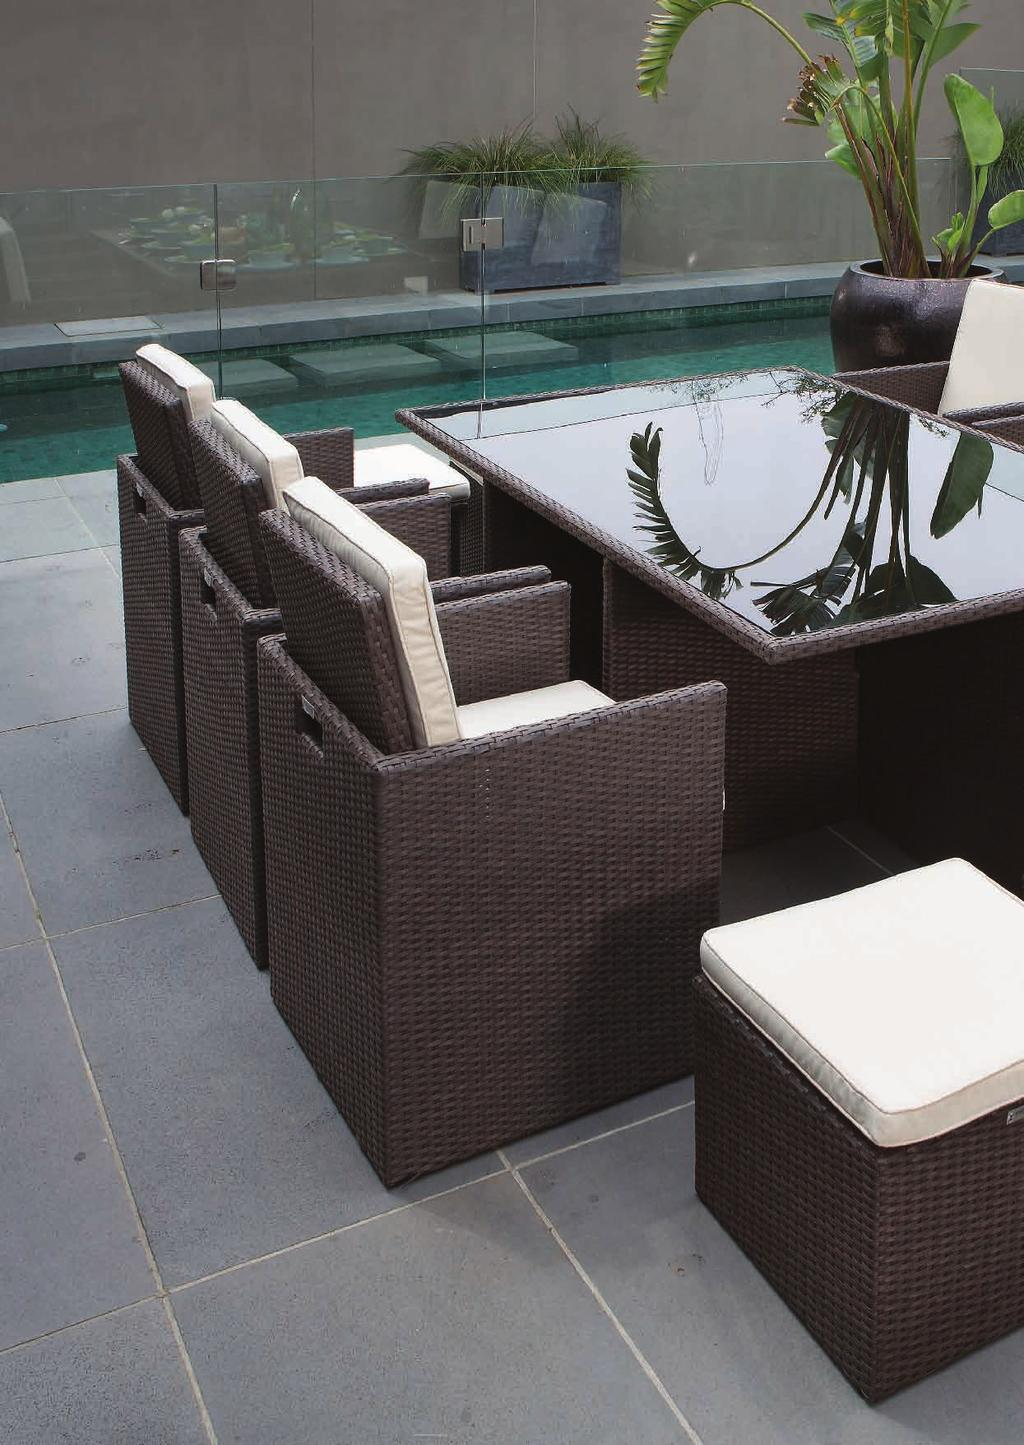 SEASIDE CUBE SEASIDE 11 PIECE CUBE SETTING HX7199HCOF (Coffee Ruff) UV stablised and 100% waterproof 8cm thick cushions for extra comfort Six chairs 58 x 55 x 70cm with cushions Four footstools